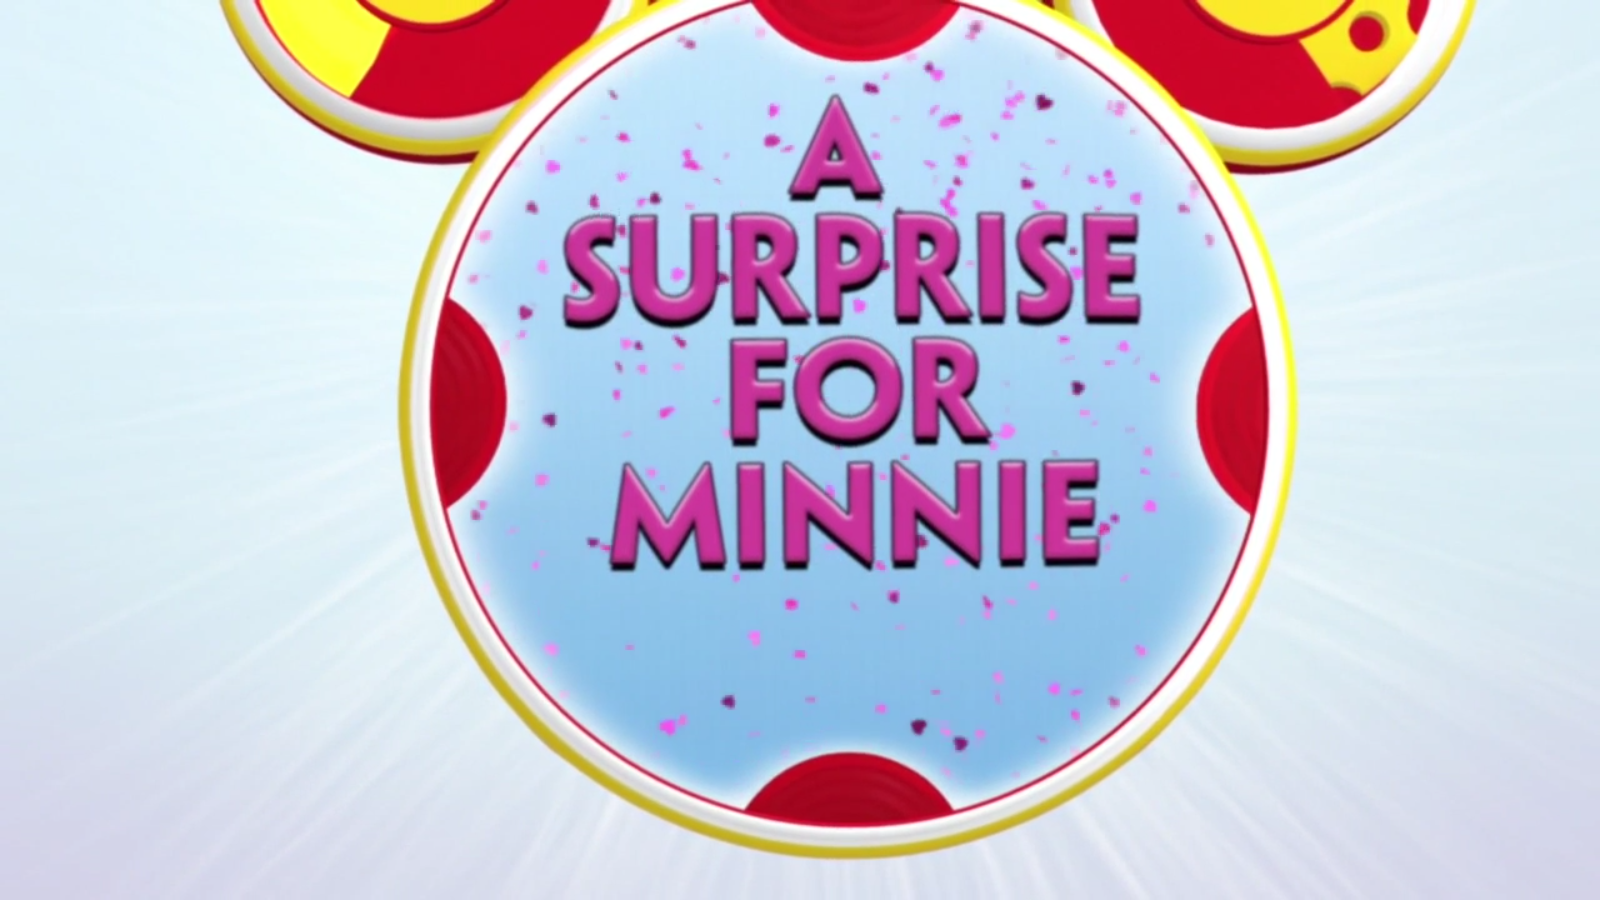 A Surprise for Minnie